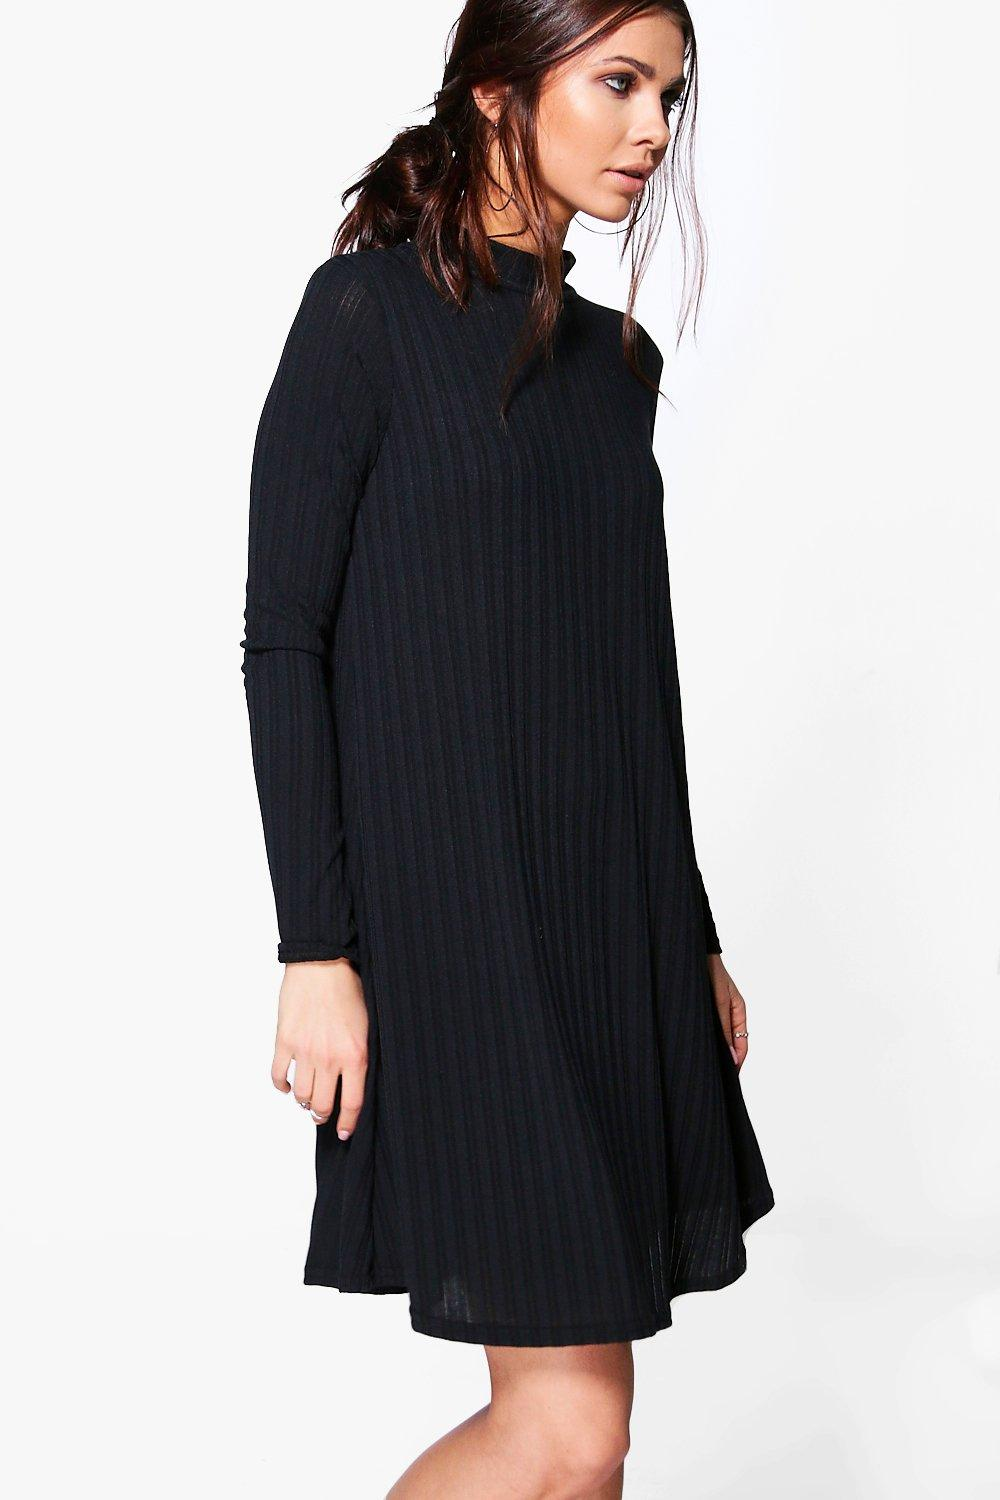 08708bbde31 Jessica High Neck Rib Knit Swing Dress. Hover to zoom